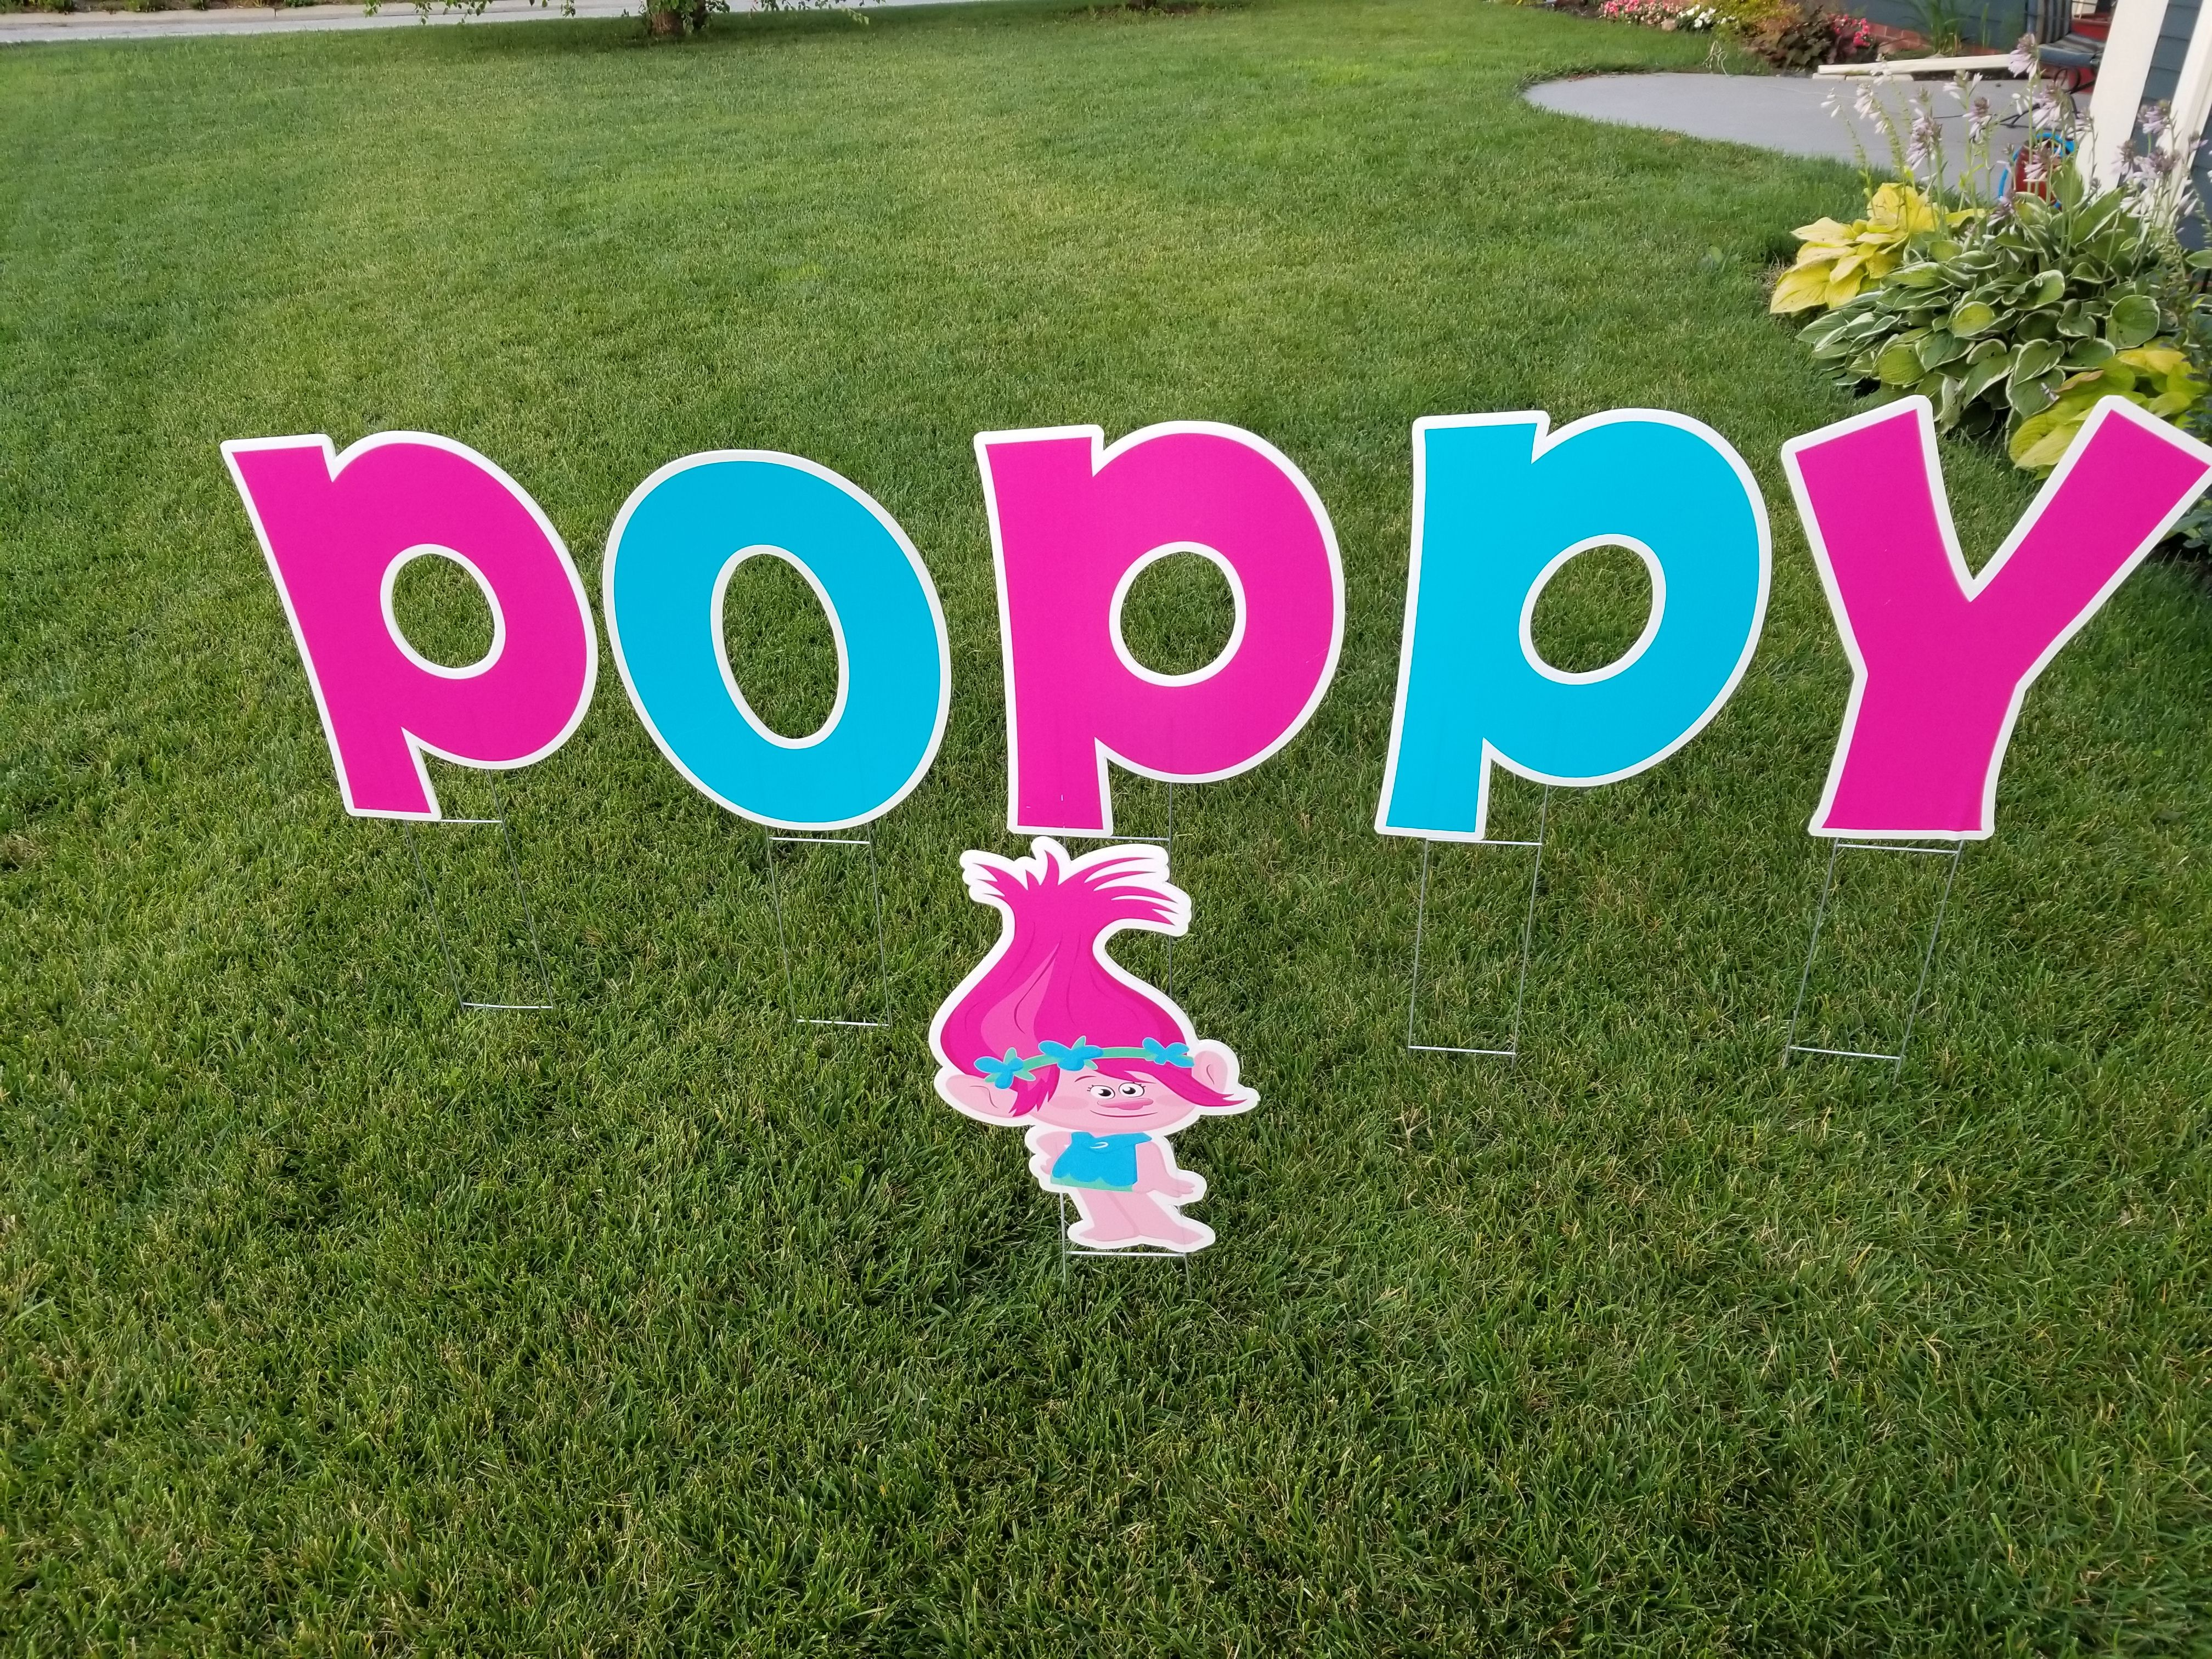 We have a Princess Poppy graphic to add to your special yard card ...